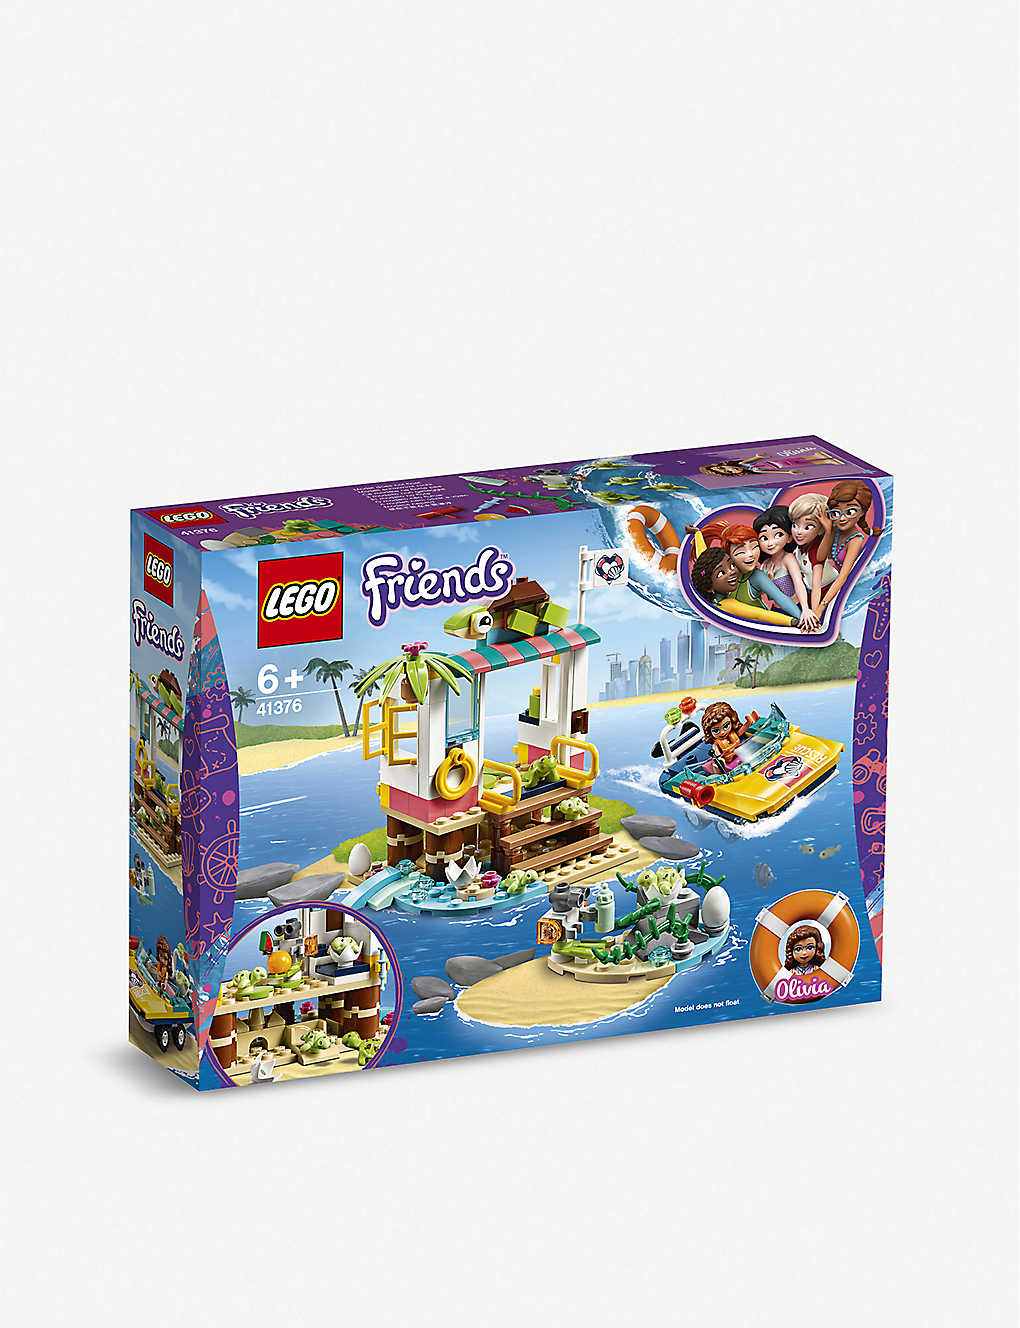 LEGO: Friends Turtles Rescue Mission set